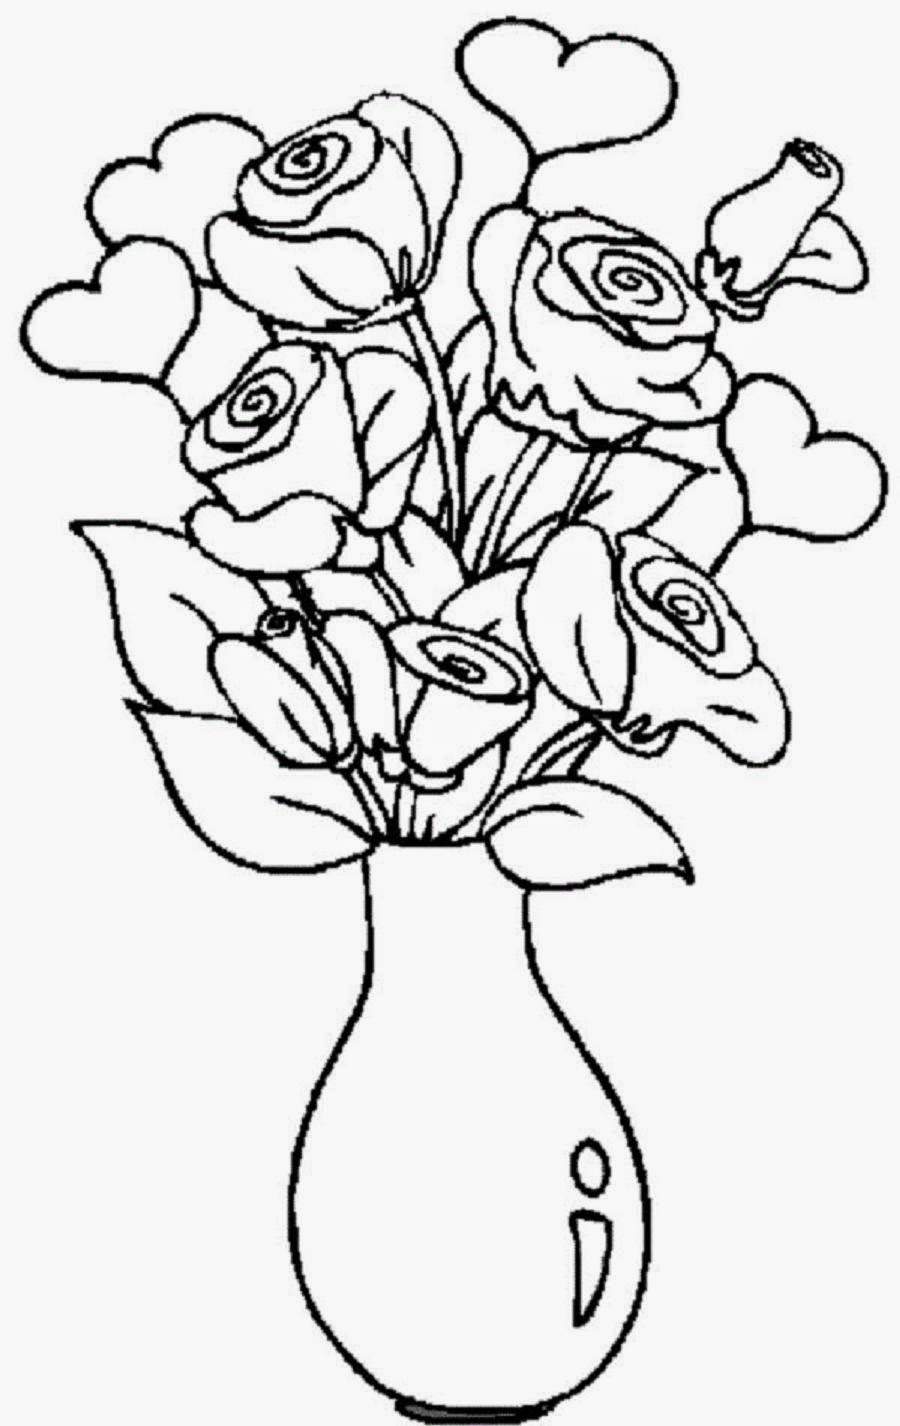 colouring pages flowers in a vase 8 flower vase template for kids sampletemplatess colouring in vase a pages flowers